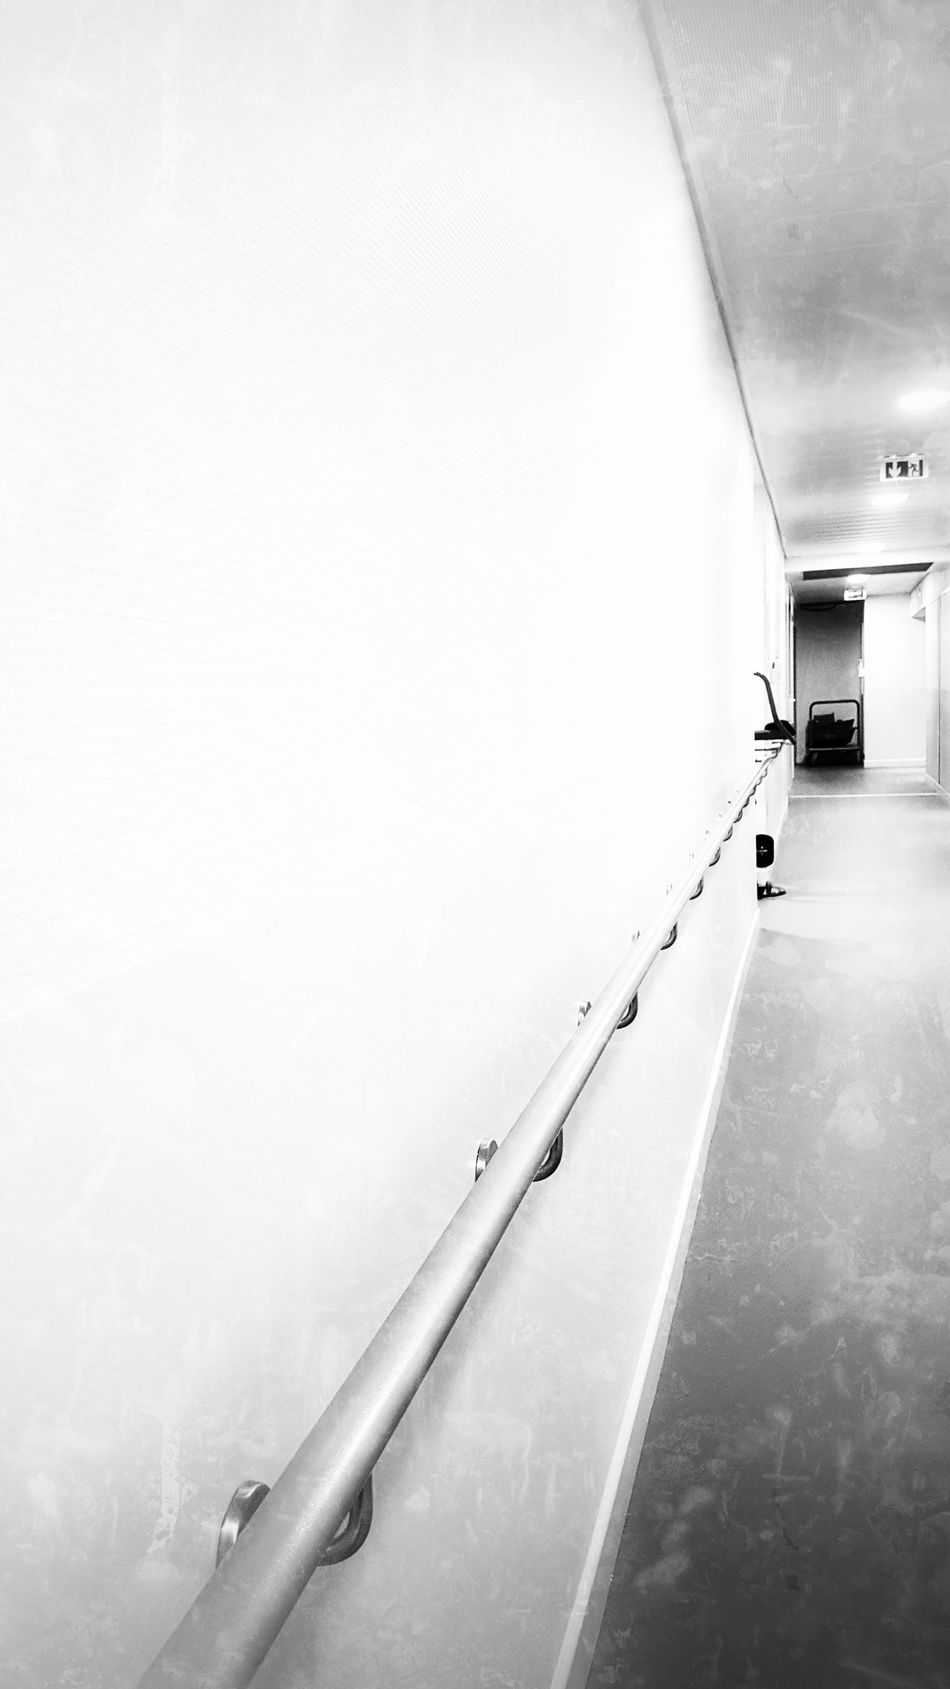 Working Indoors  Hospitals Bnw_life Tranquility No People Bnw Photography